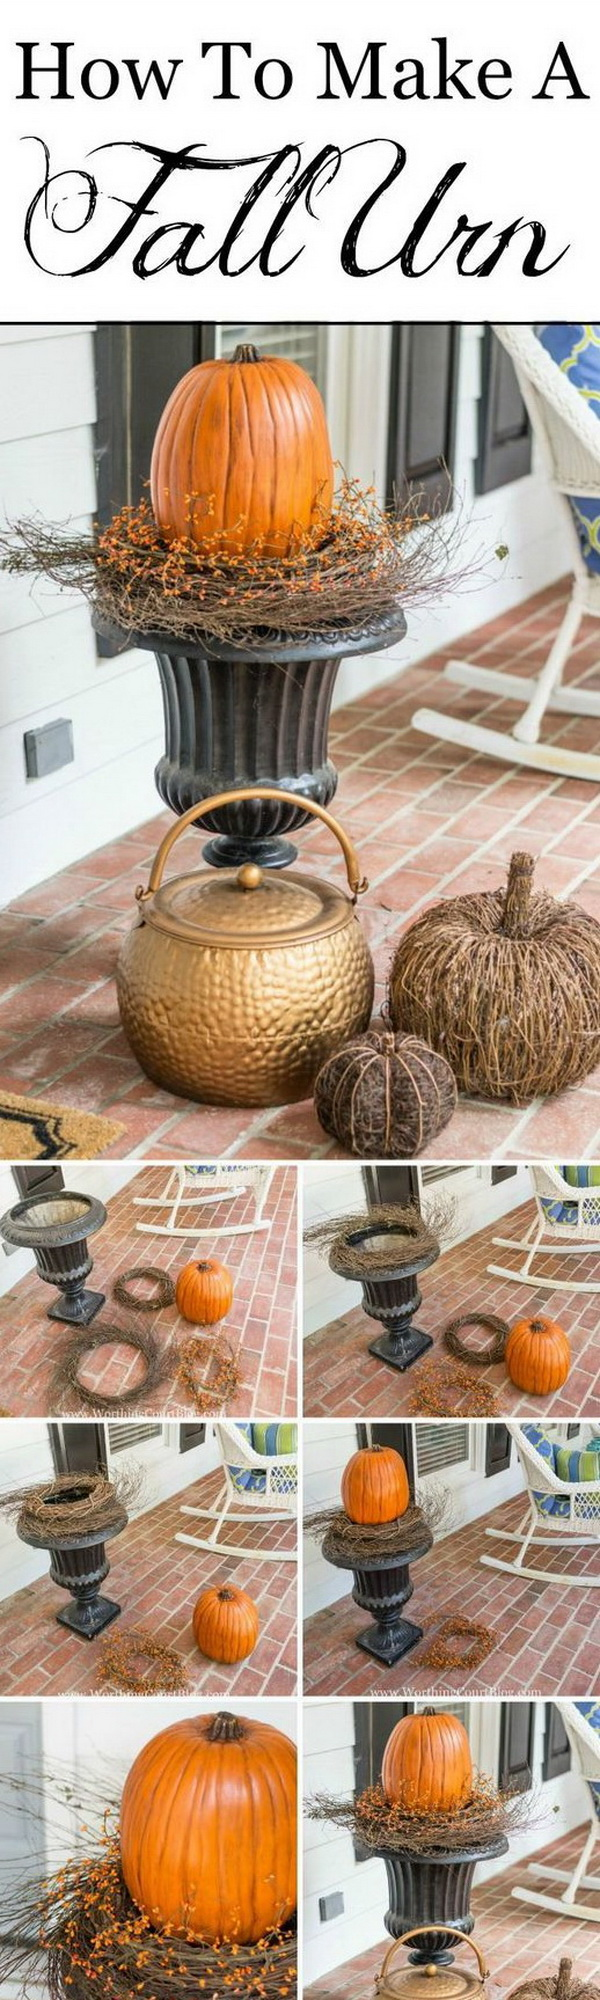 DIY Fall Planter. Great fall decor that you can make in no time!